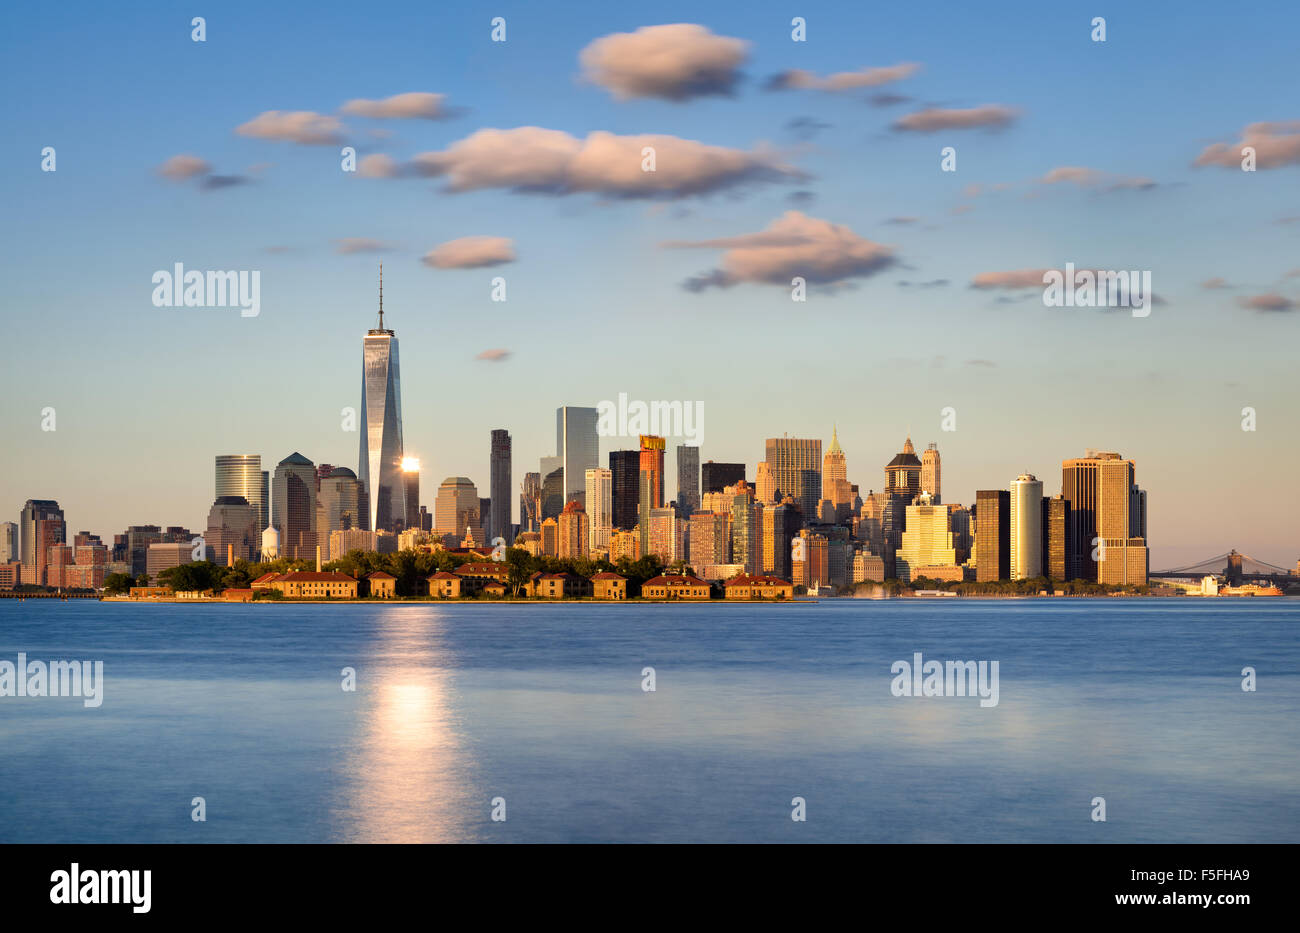 Skyline de New York, Manhattan. Ellis Island s'affiche en face du quartier des gratte-ciel. Photo Stock